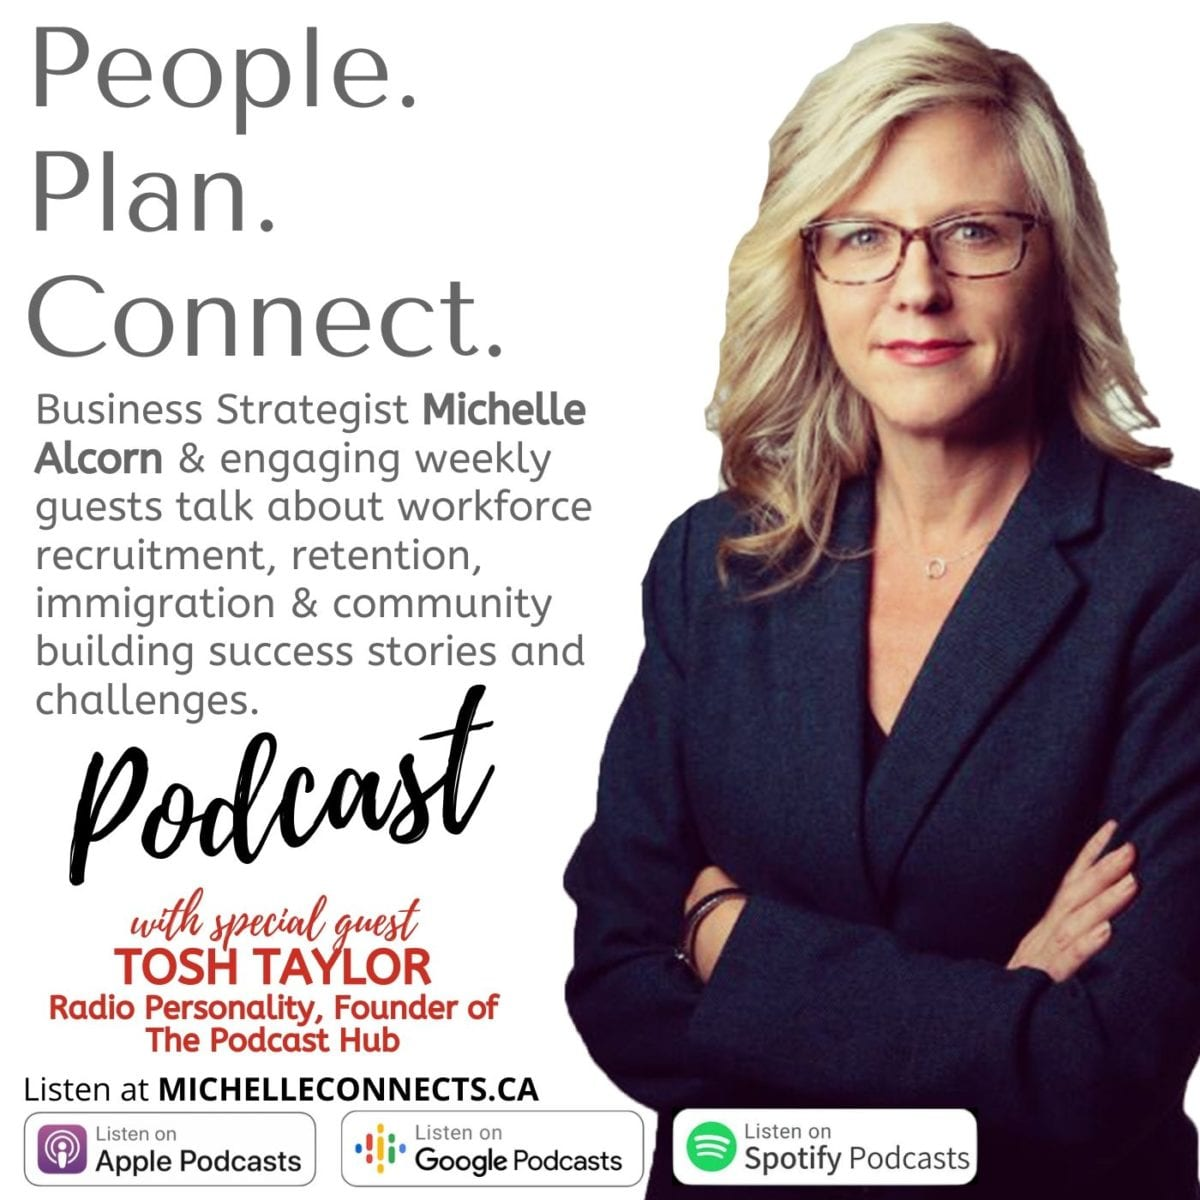 People. Plan. Connect Podcast 5